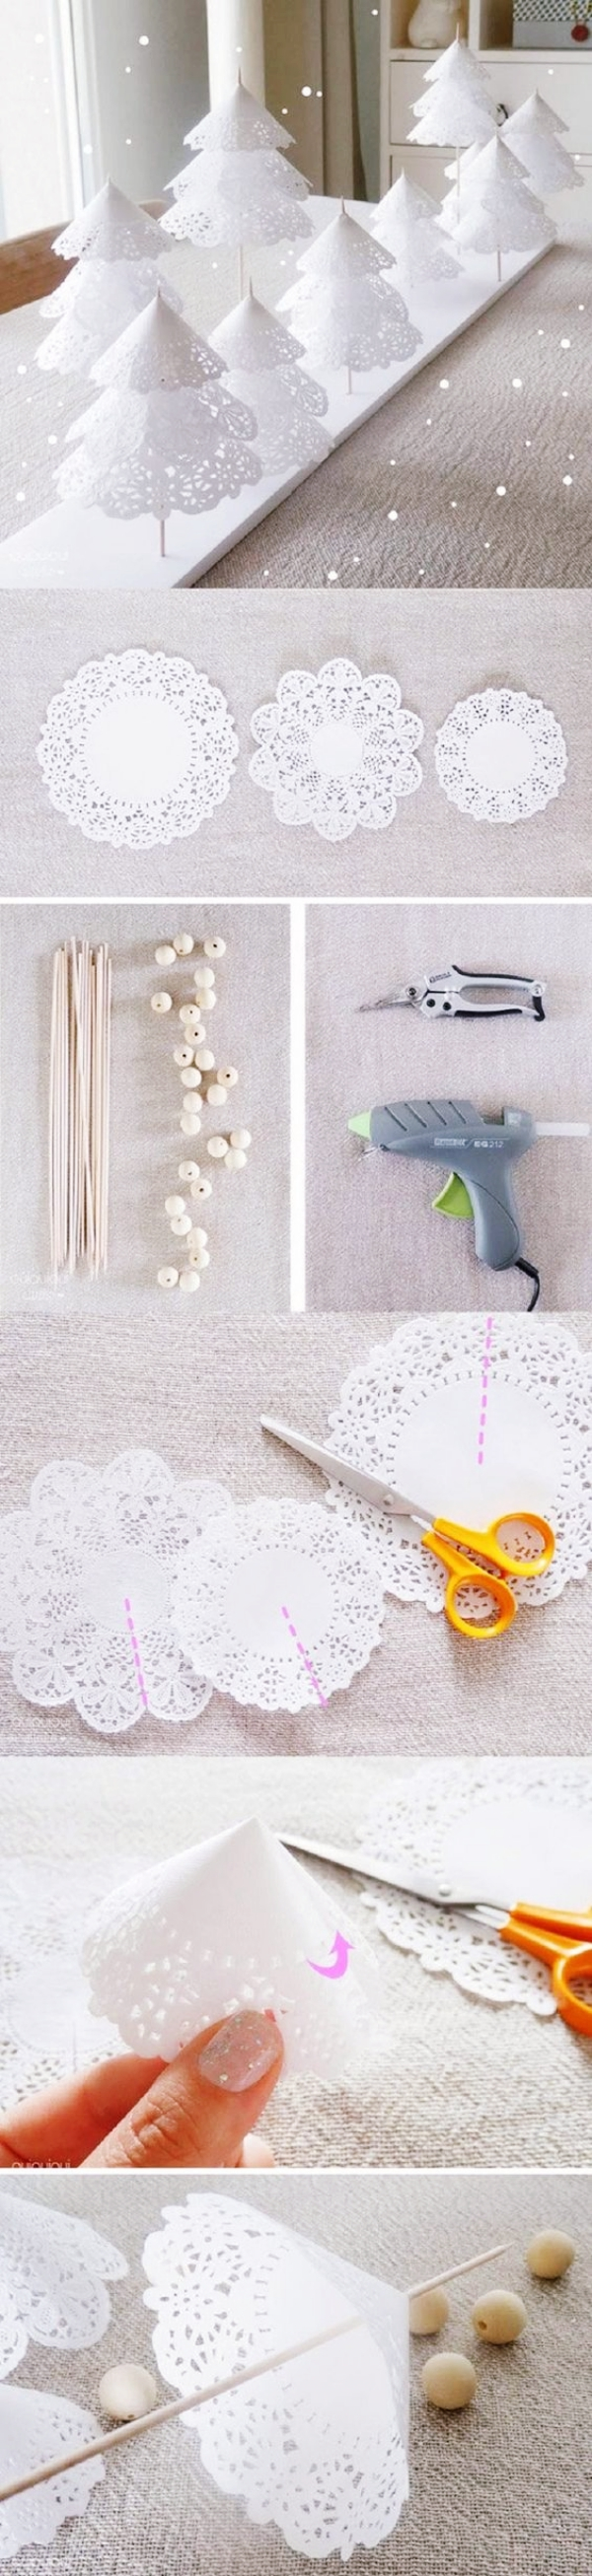 Cool-Winter-DIY-Craft-Projects